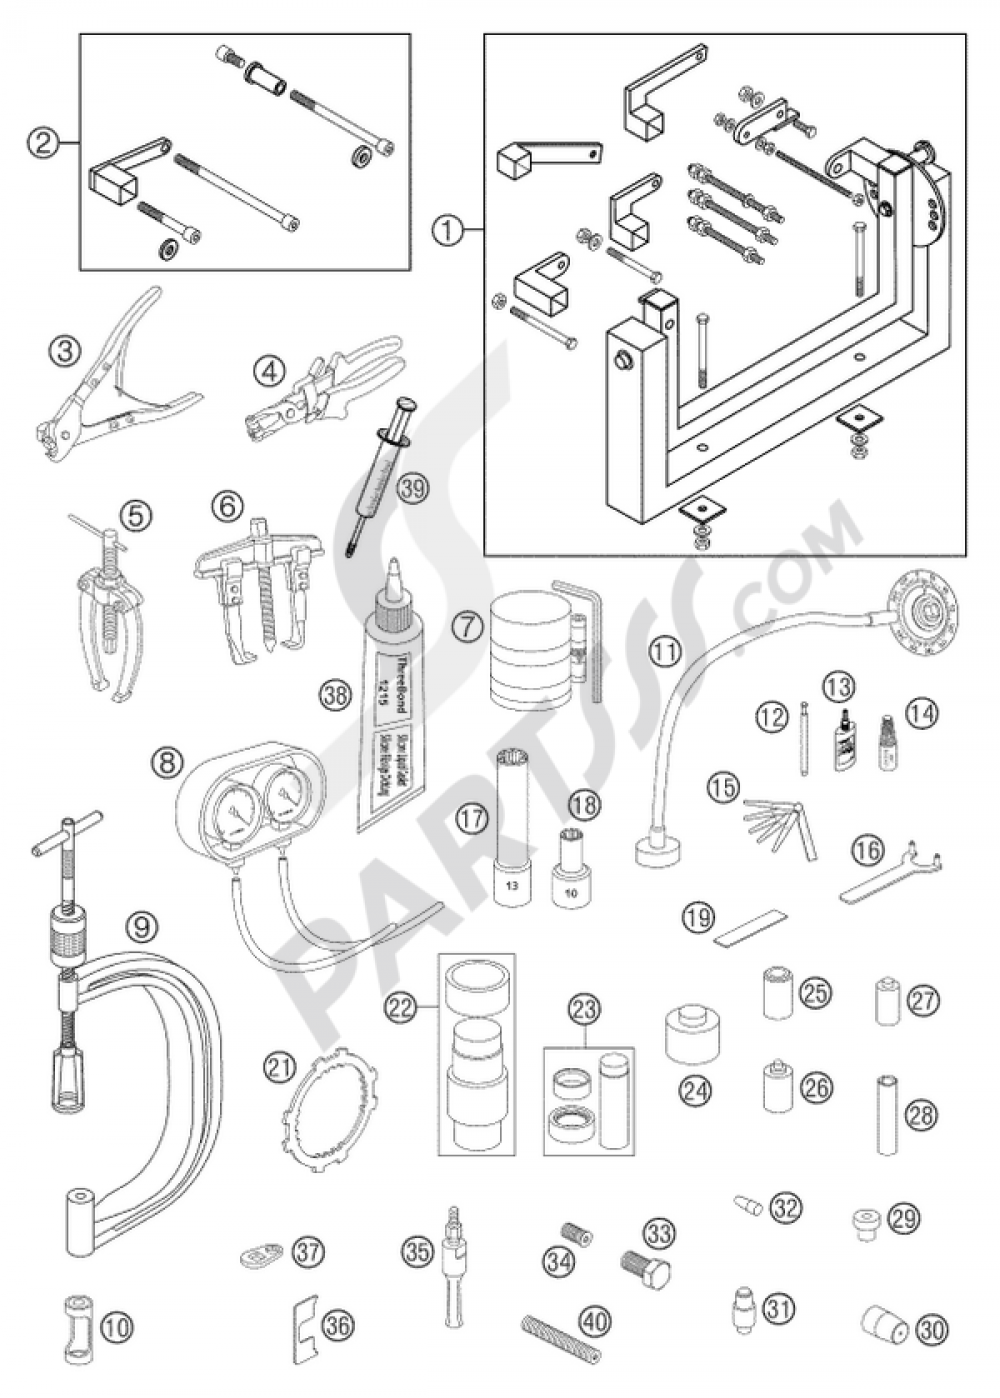 Lc8 Ktm Motorcycle Engine Diagrams Real Wiring Diagram 990 Adventure Special Tools 950 Silver 2003 Eu Rh Partsss Com Motor